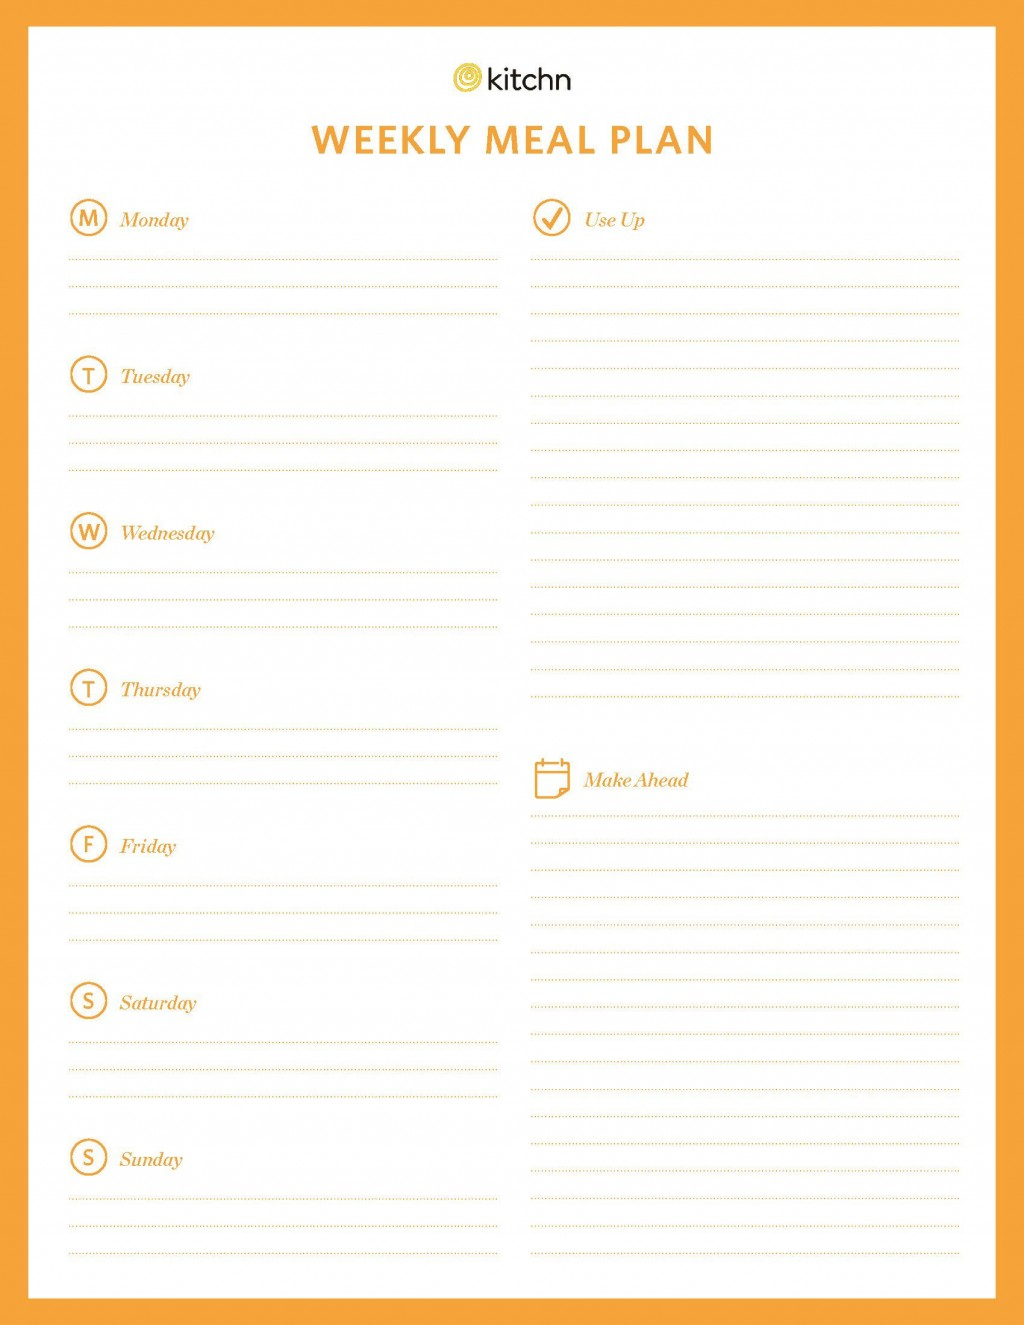 001 Magnificent Weekly Eating Plan Template High Definition  Food Planner Excel Meal DownloadLarge